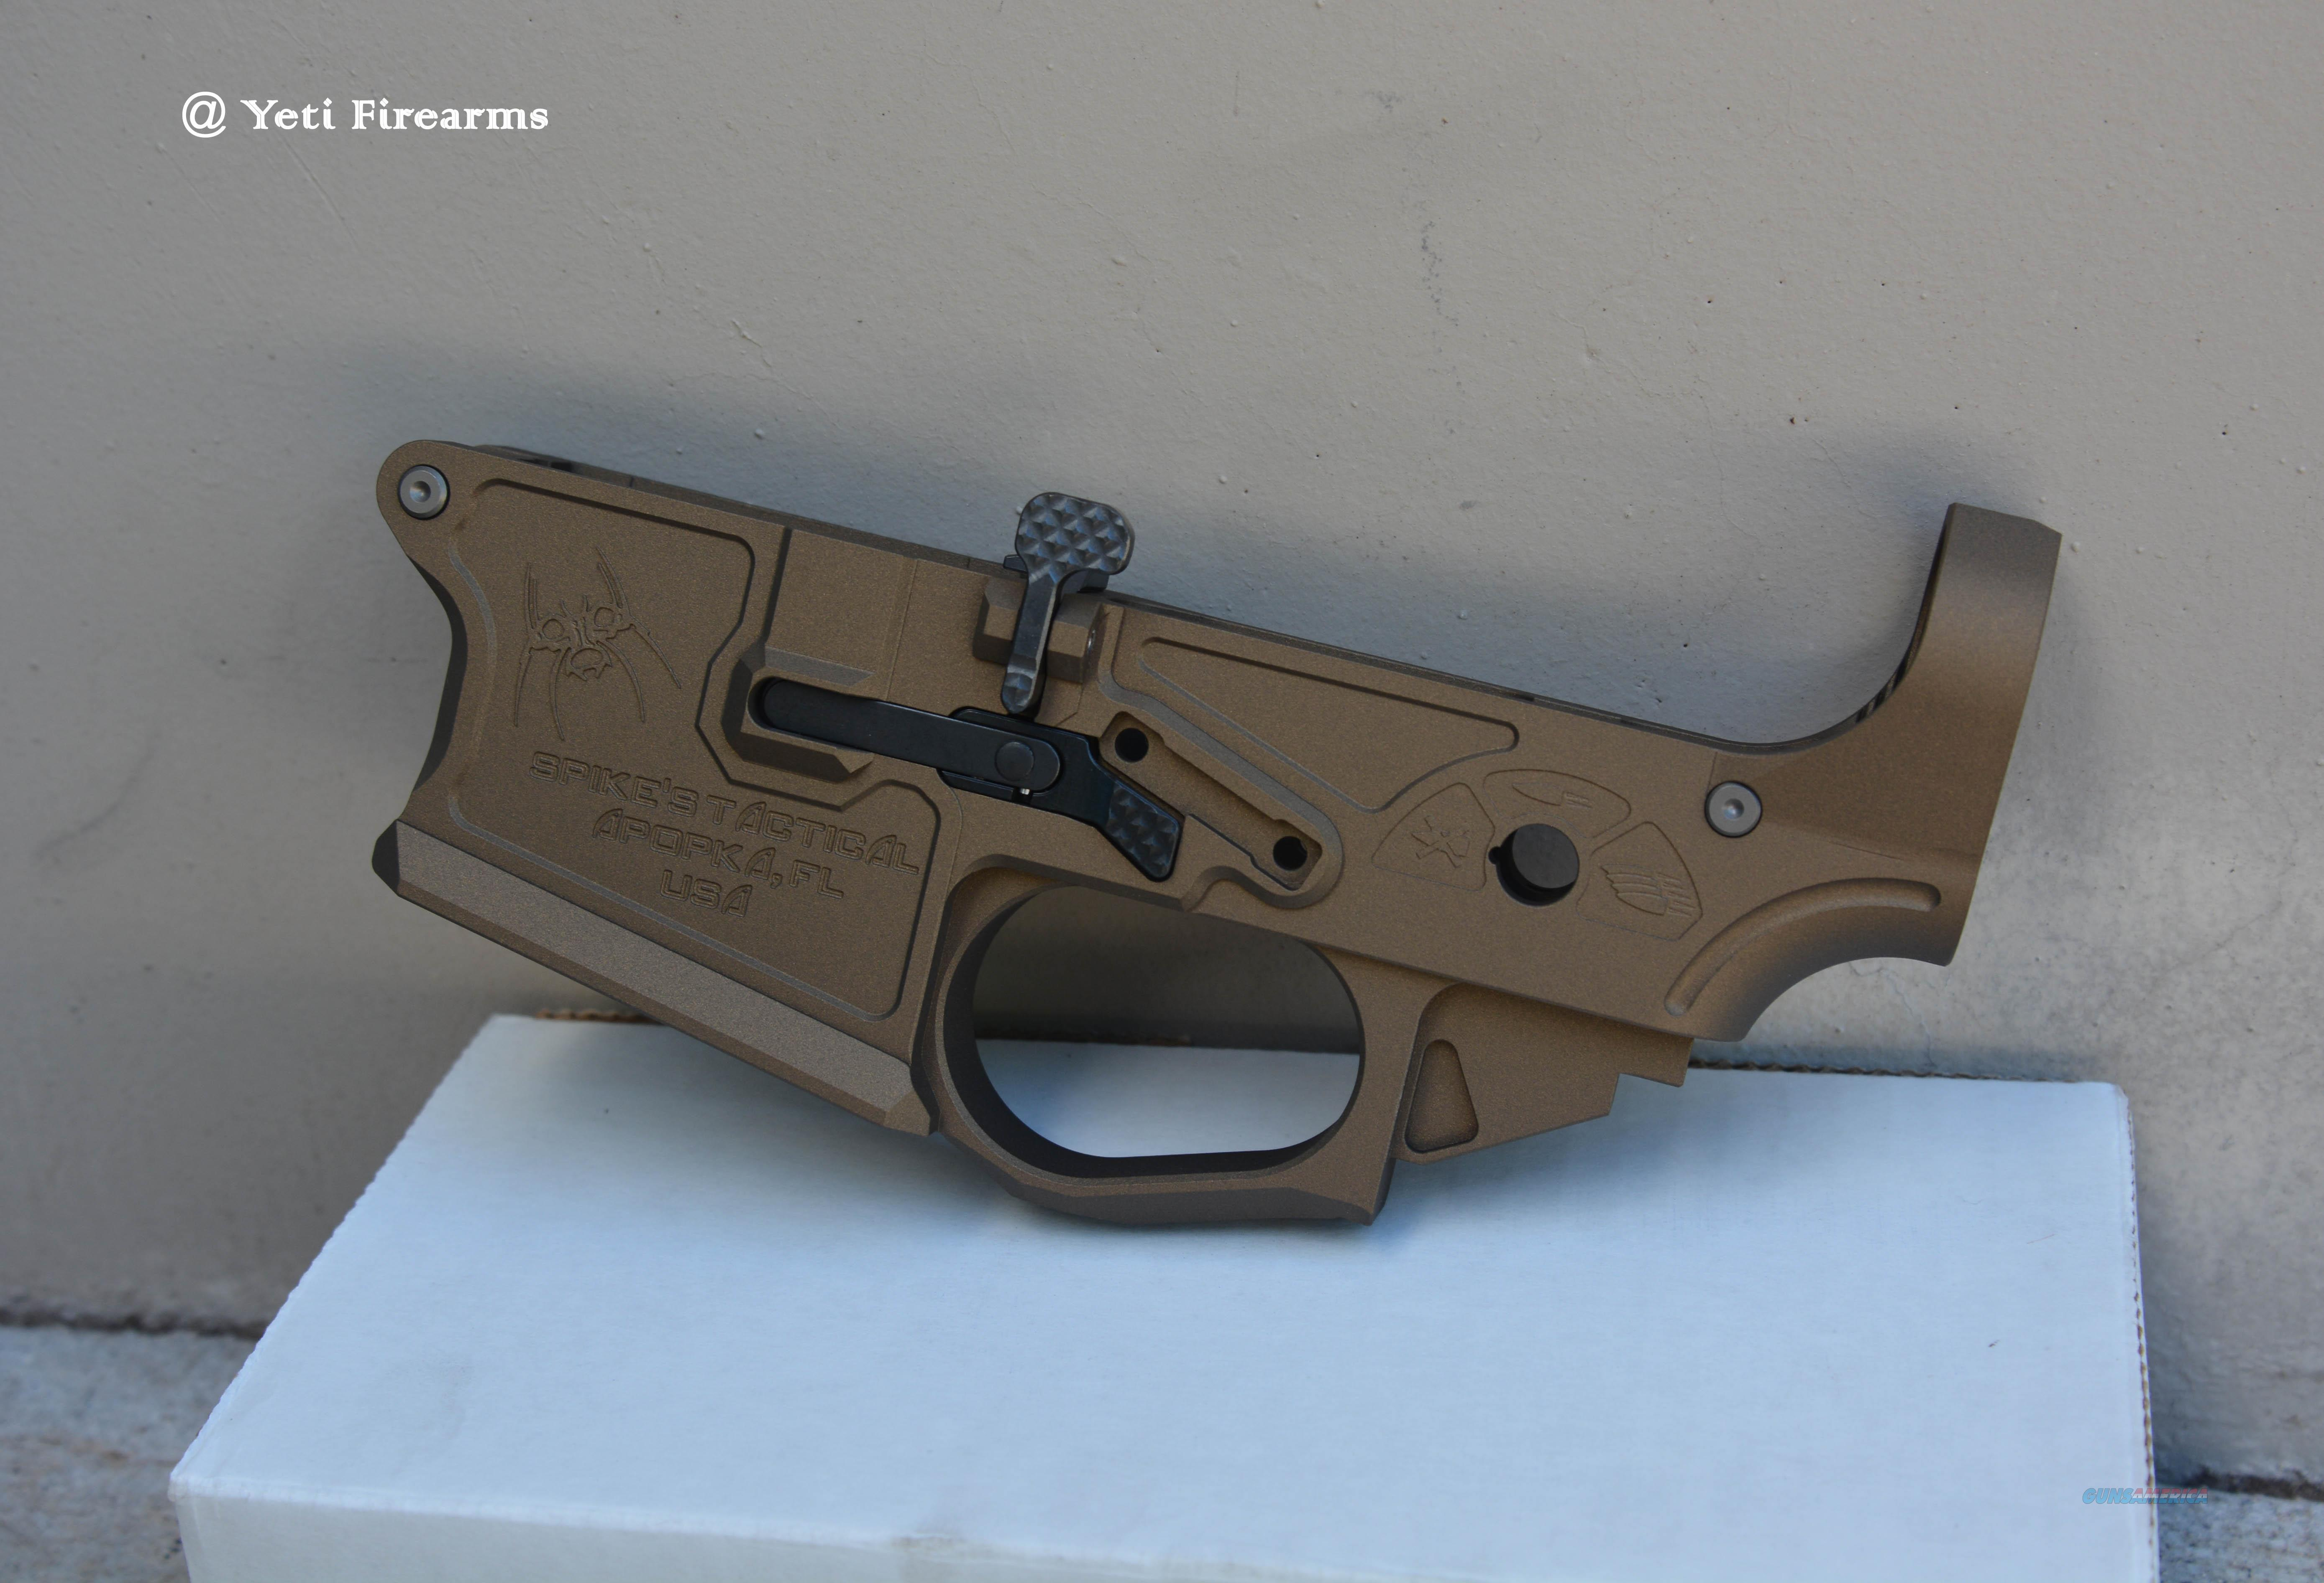 X-Werks Burnt Bronze Spikes Gen 2 Billet Lower AR AR-15 5.56mm STLB200 Cerakote No CC Fee Tactical  Guns > Rifles > AR-15 Rifles - Small Manufacturers > Lower Only